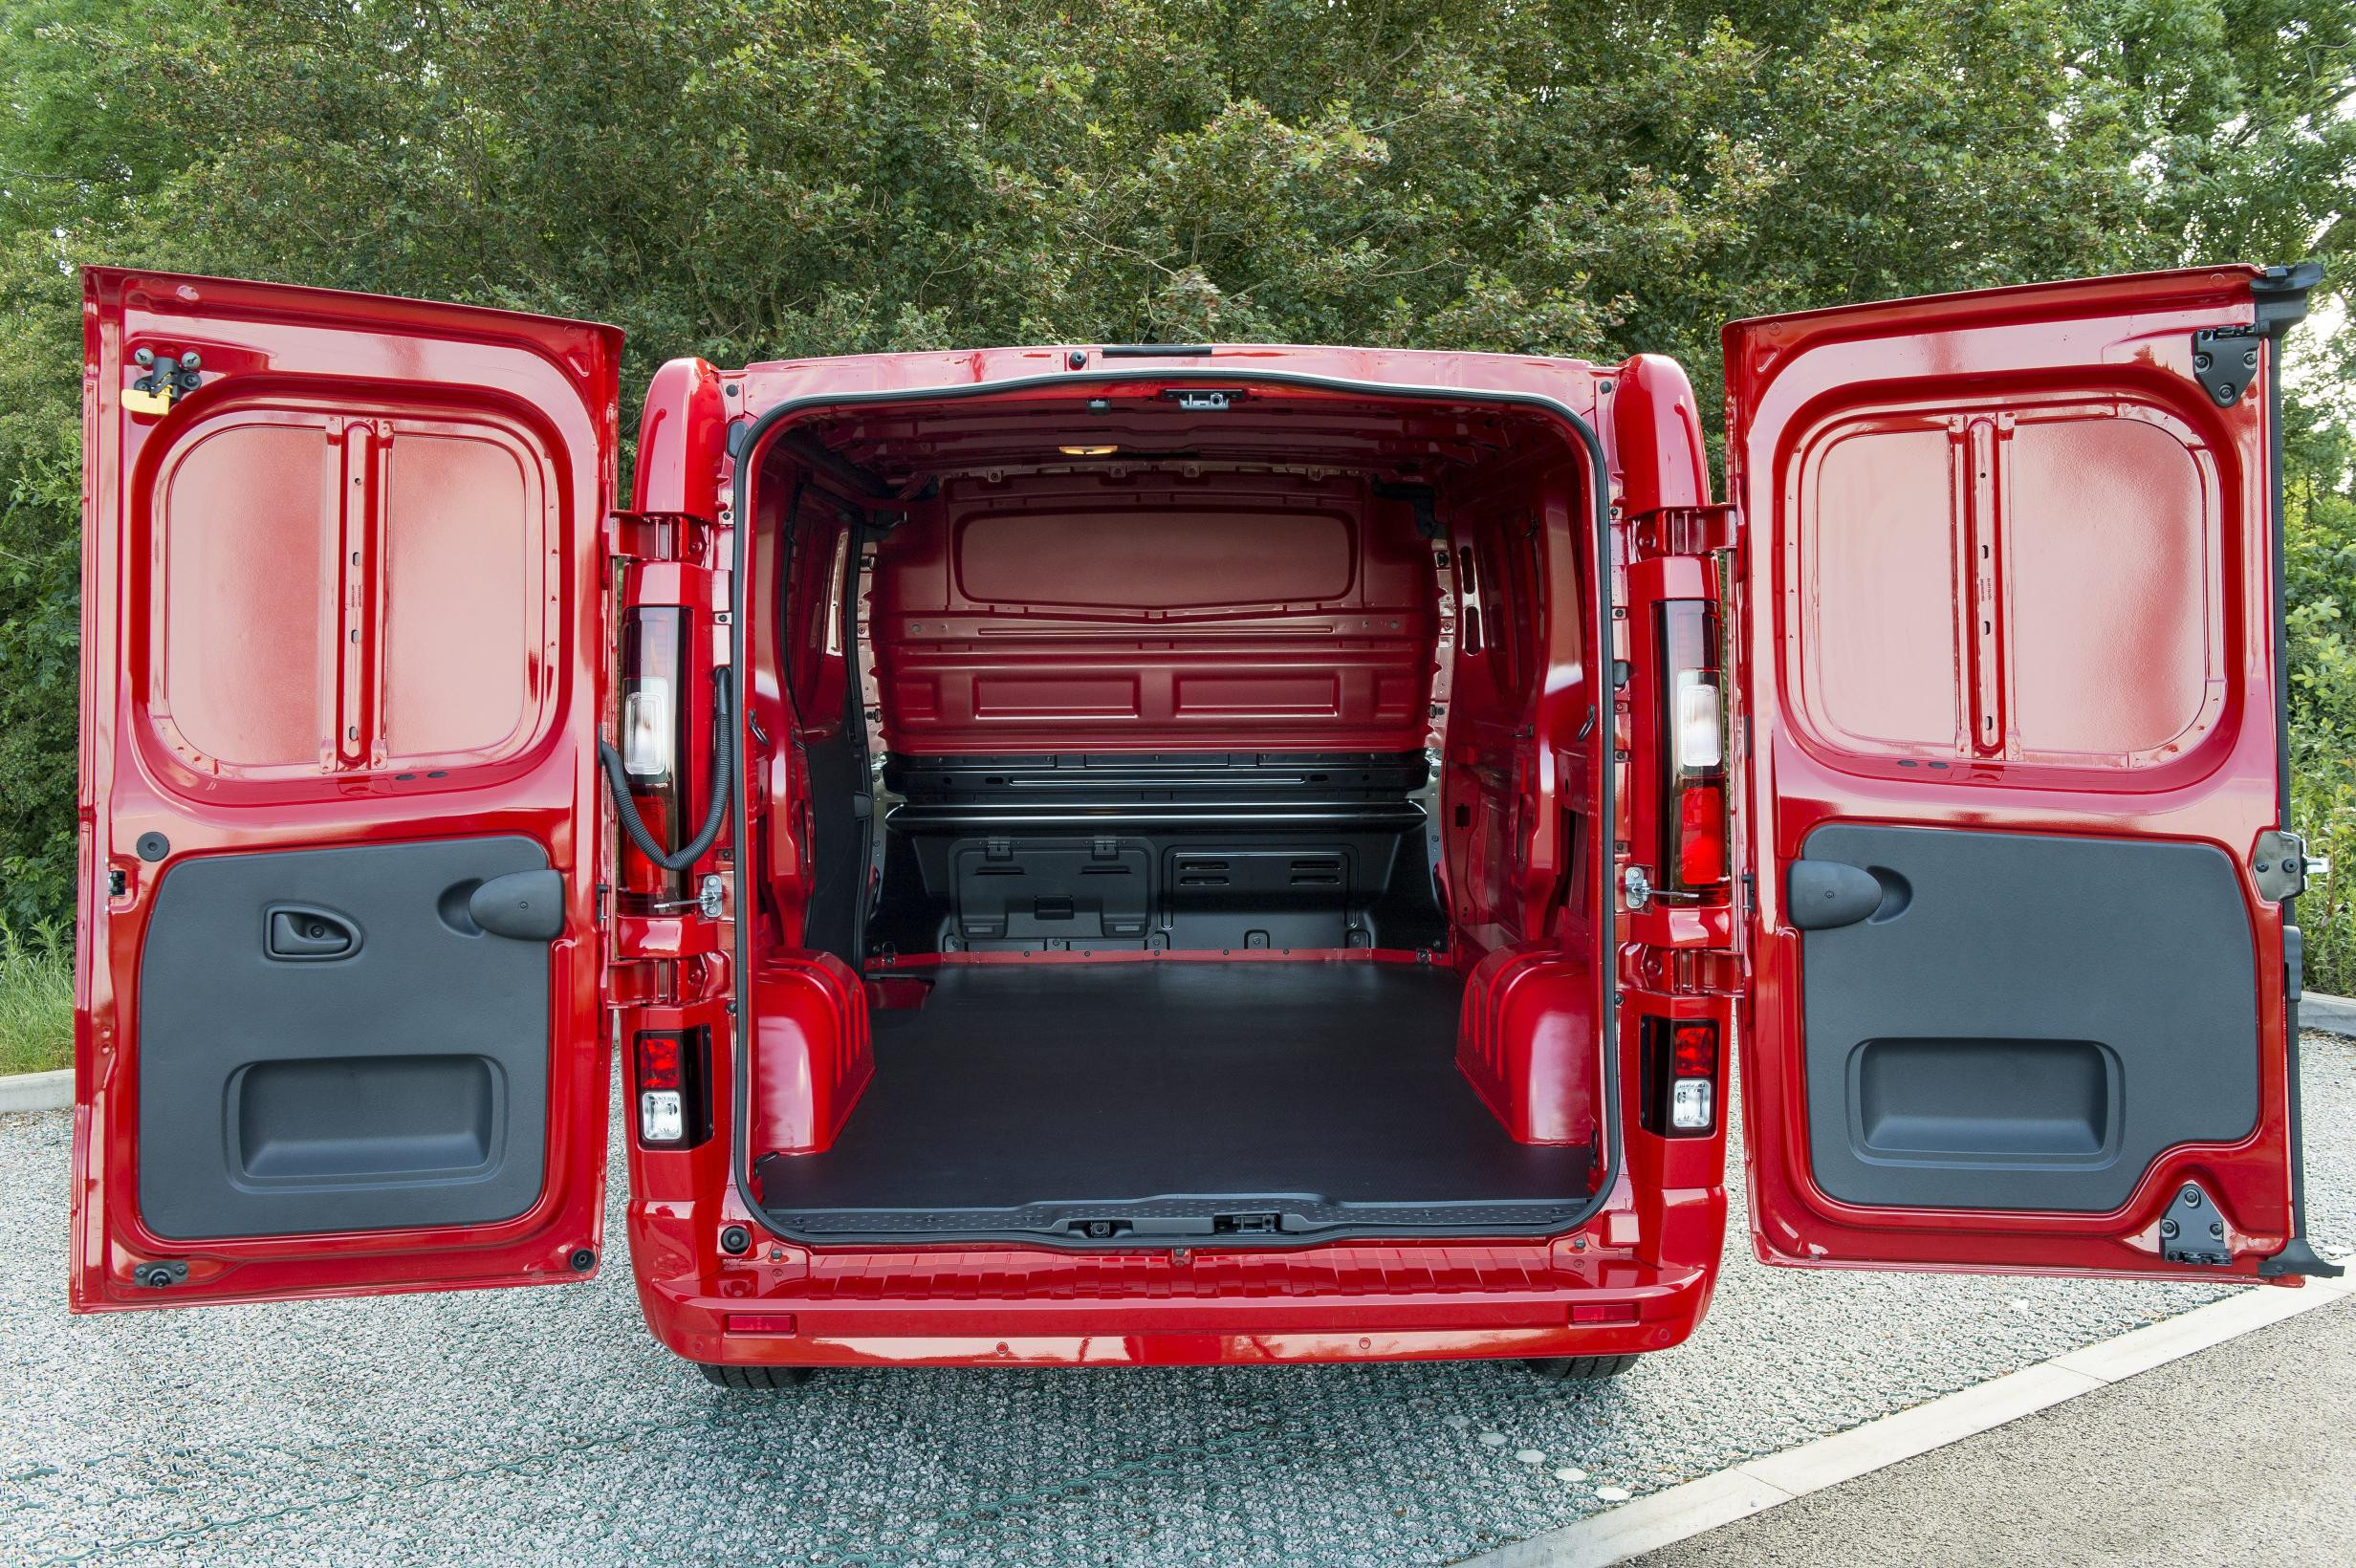 Rear shot of red Vauxhall Vivaro with both doors open